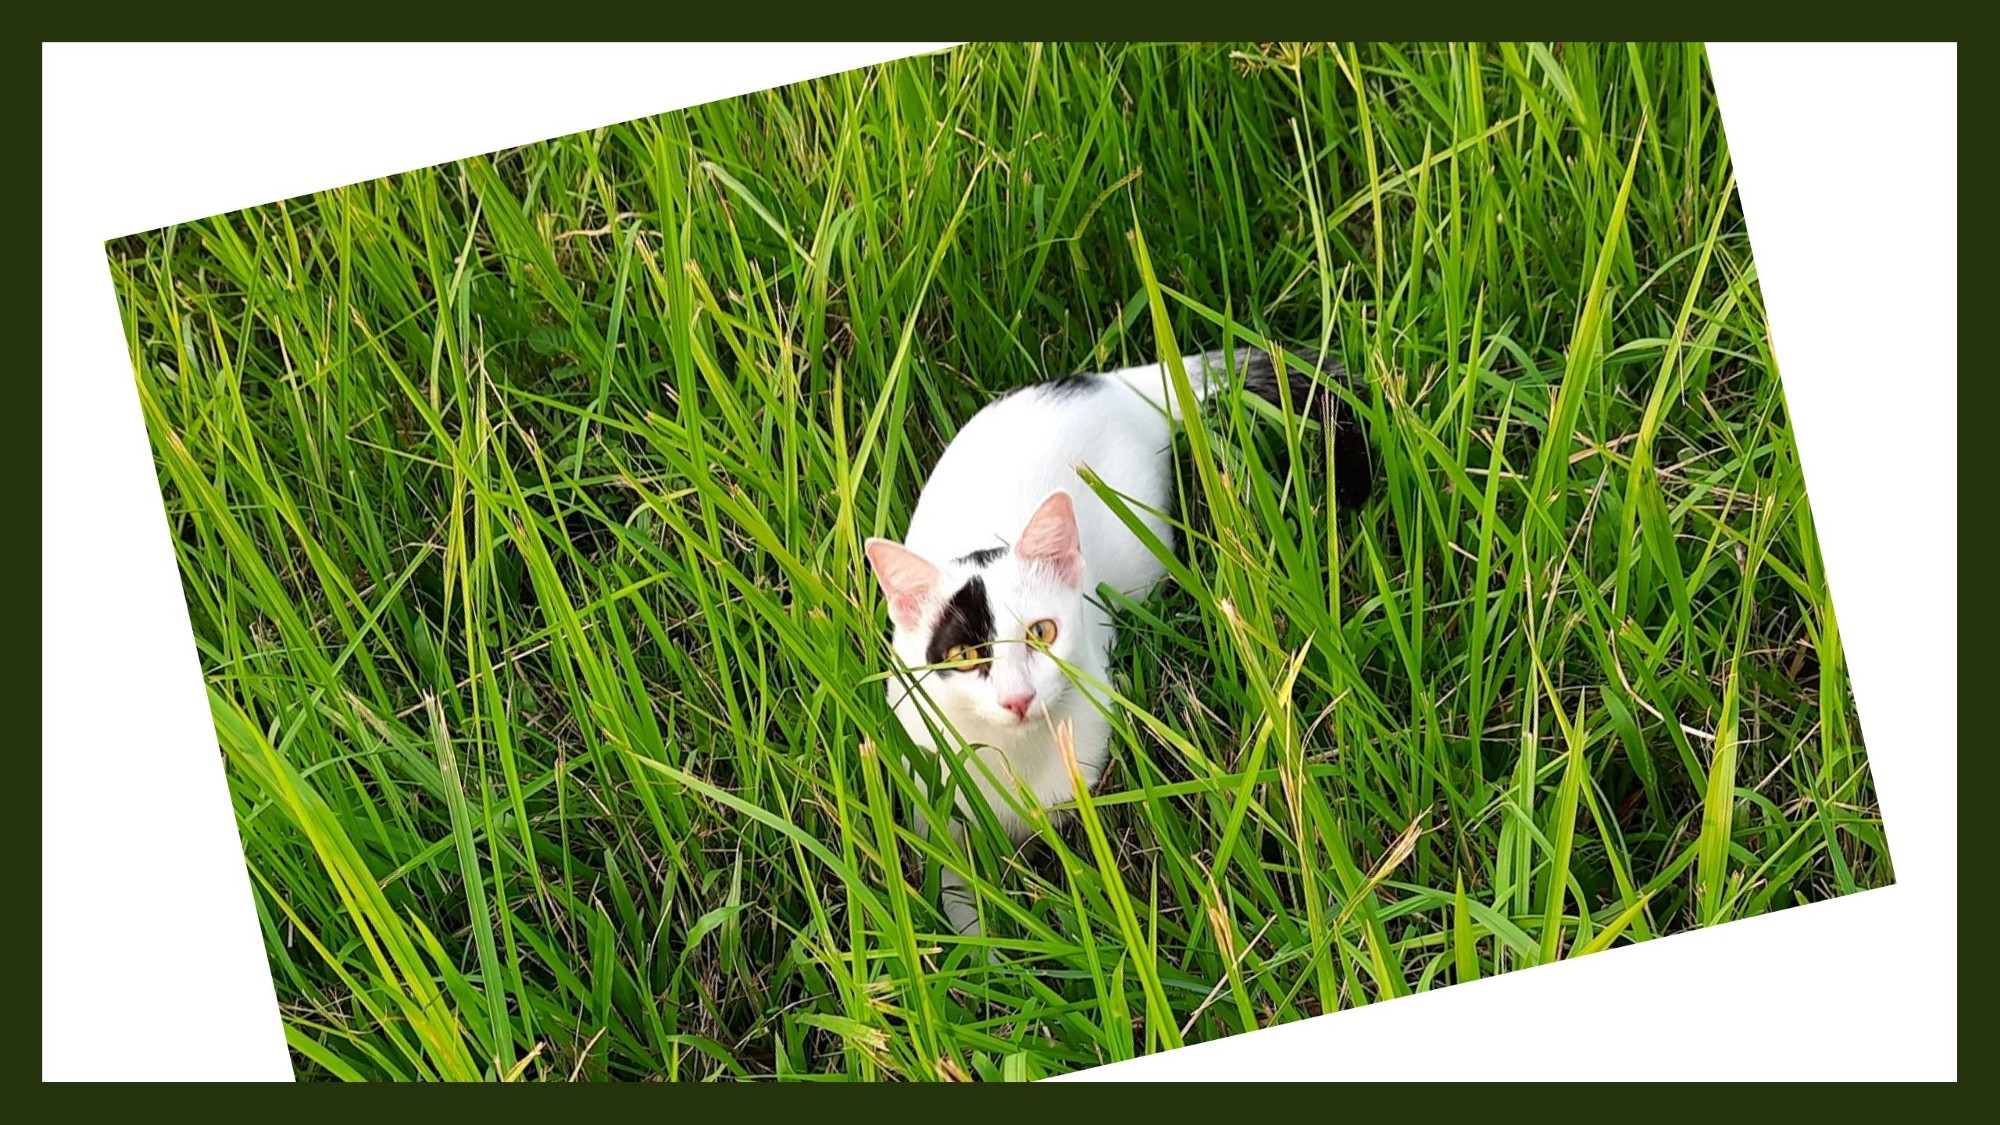 My cat Mini is playing hide and seek in the grass